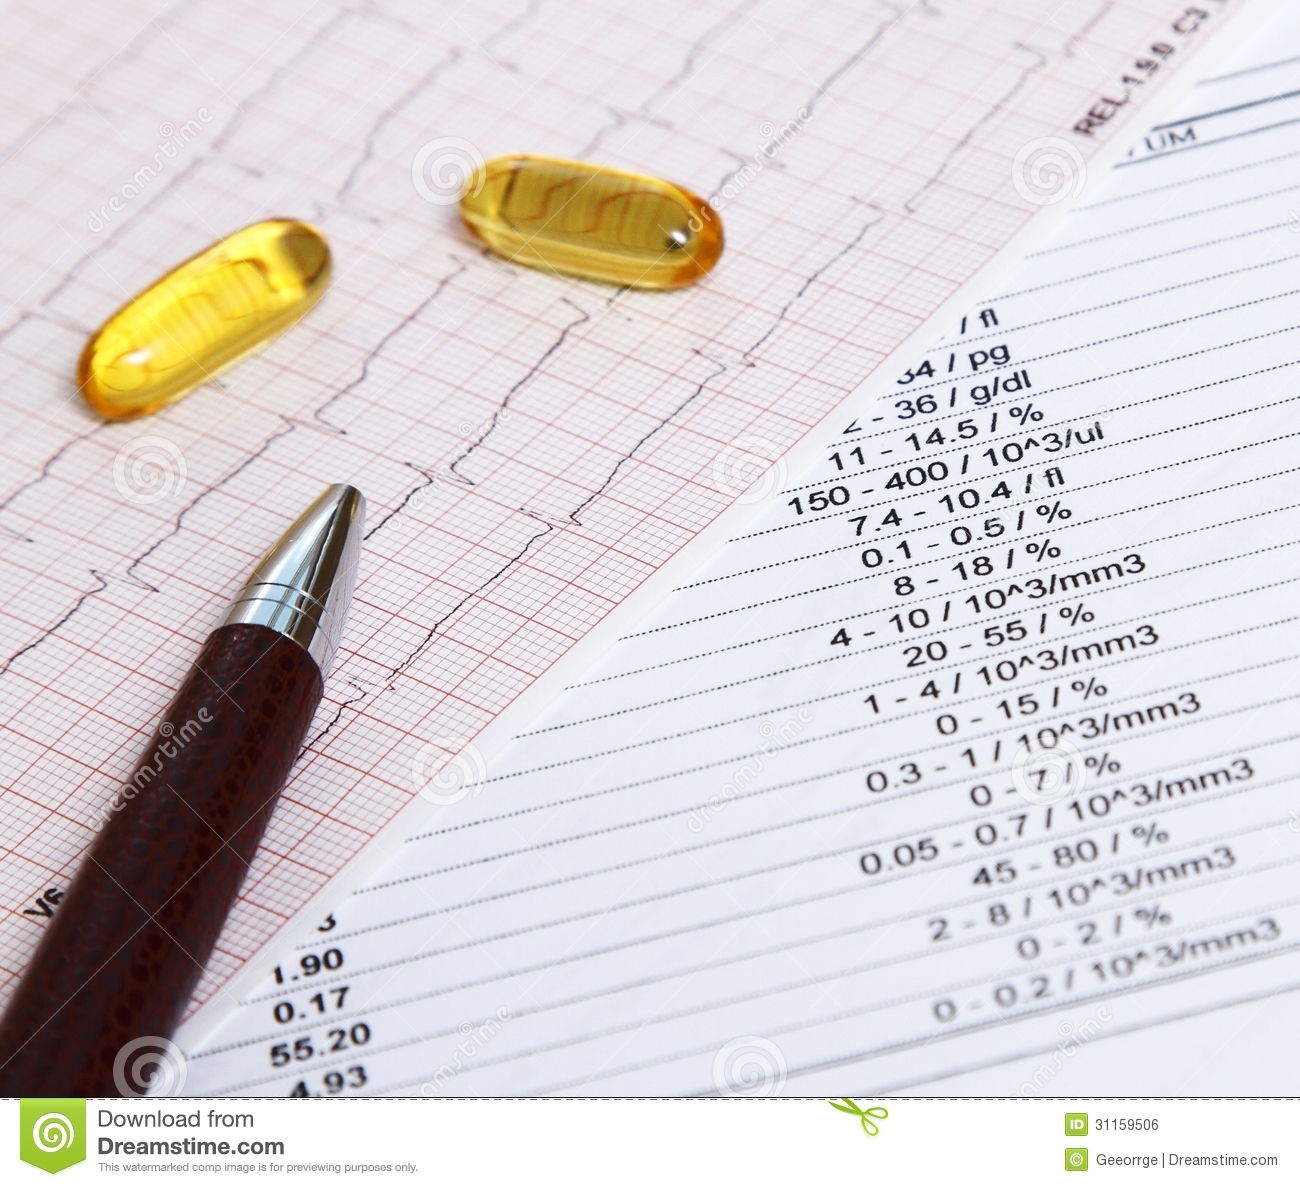 Fish oil for heart disease prevention royalty free stock for Fish oil for heart